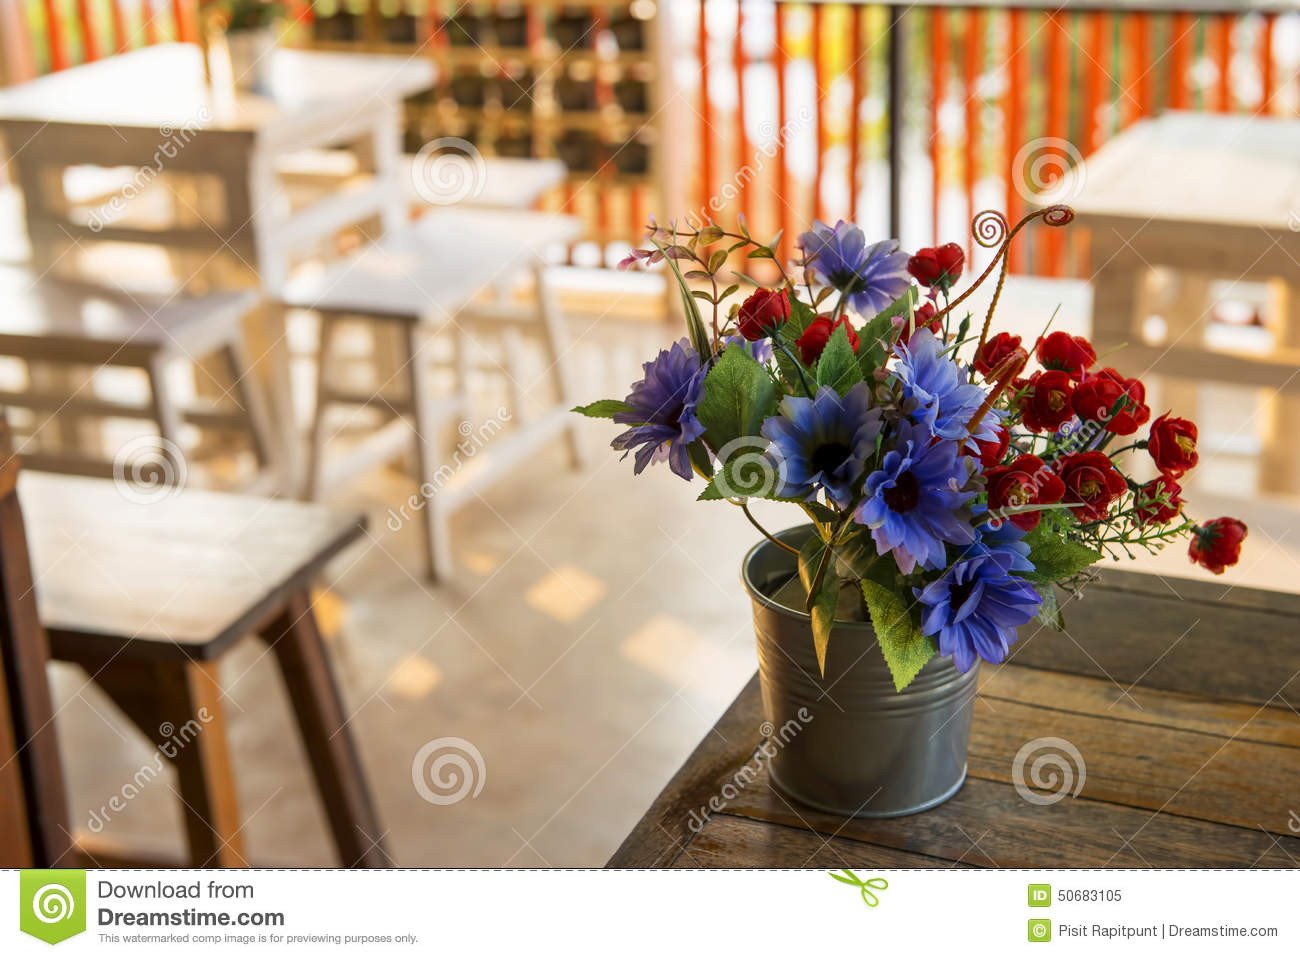 Decoration Flower On The Table In Coffee Shop Thailand Stock Photo Image 50683105